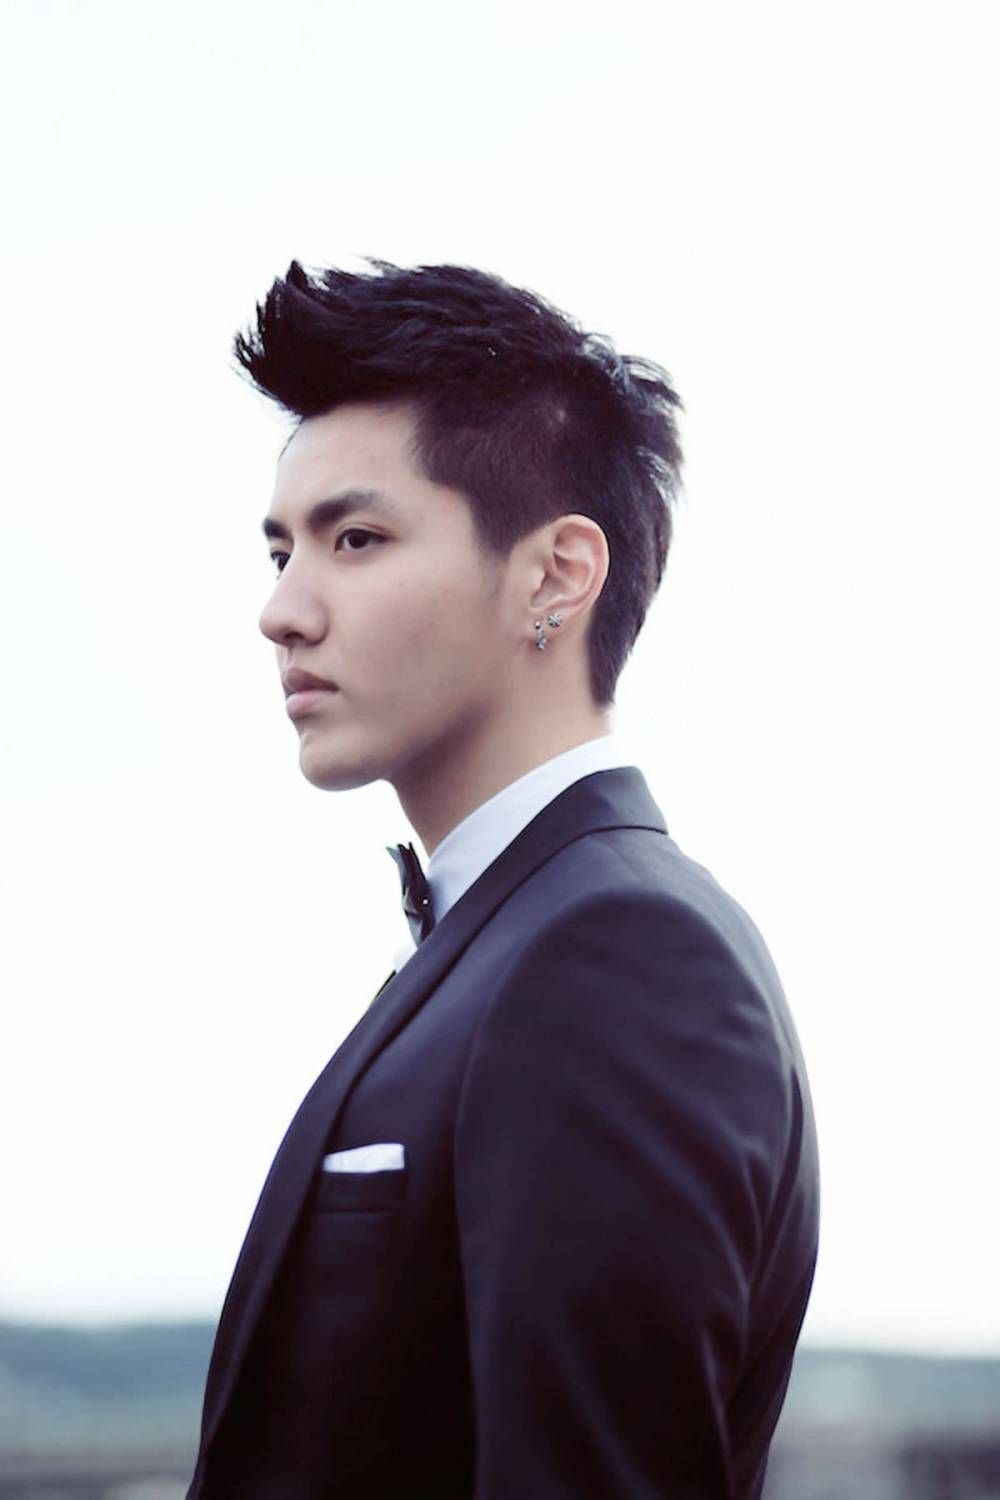 More official pictures of Kris released for Chinese film 'Somewhere Only We Know' | http://www.allkpop.com/article/2014/06/more-official-pictures-of-kris-released-for-chinese-film-somewhere-only-we-know